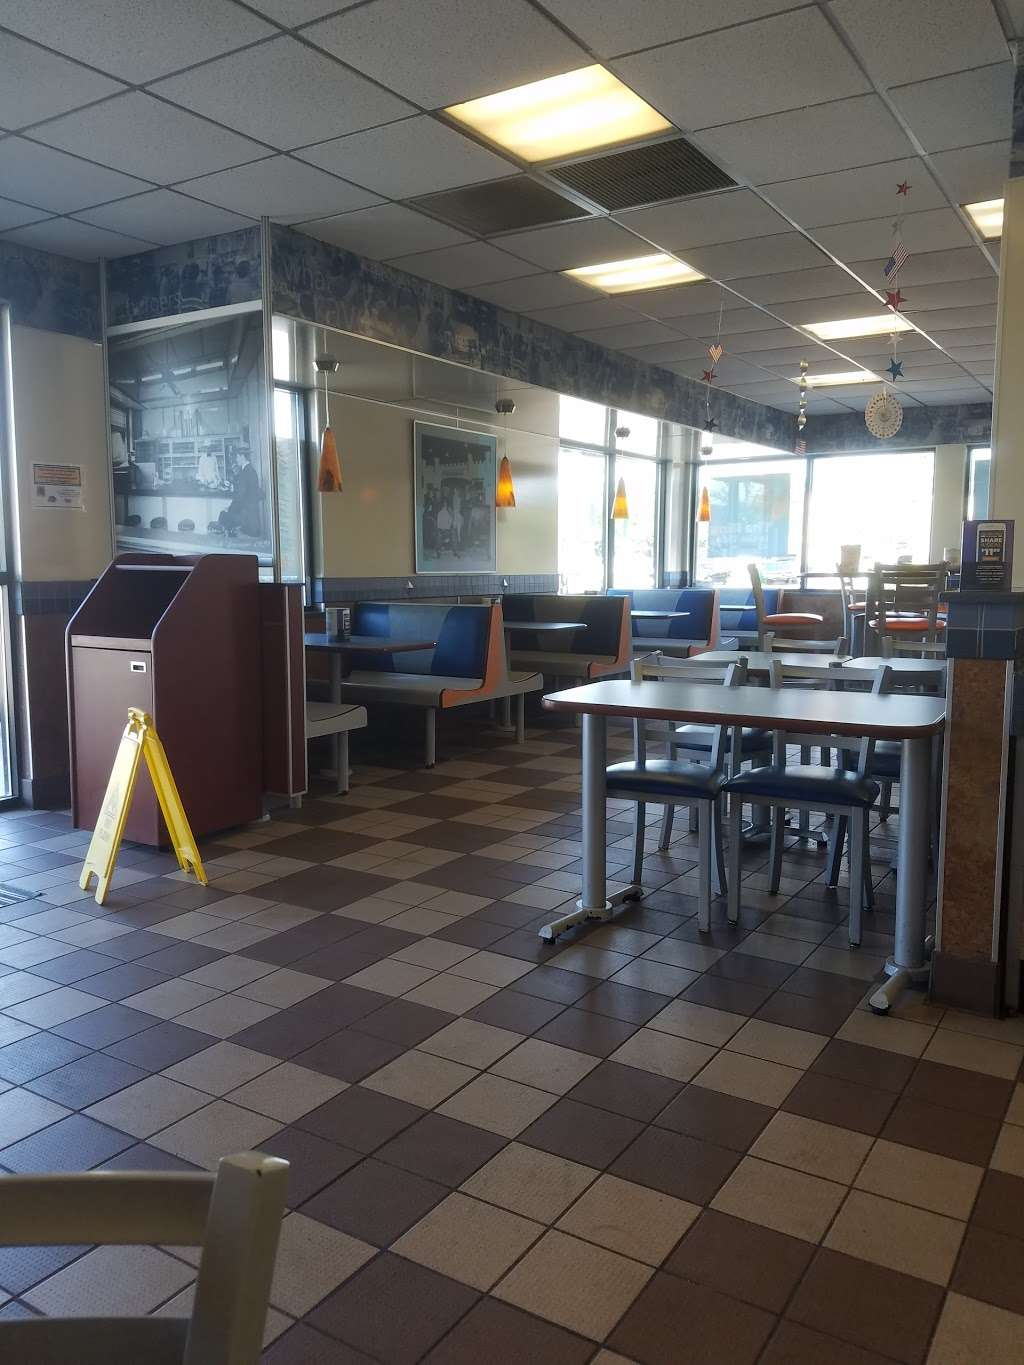 White Castle - restaurant  | Photo 3 of 9 | Address: 2555 95th St, Evergreen Park, IL 60805, USA | Phone: (708) 424-7077